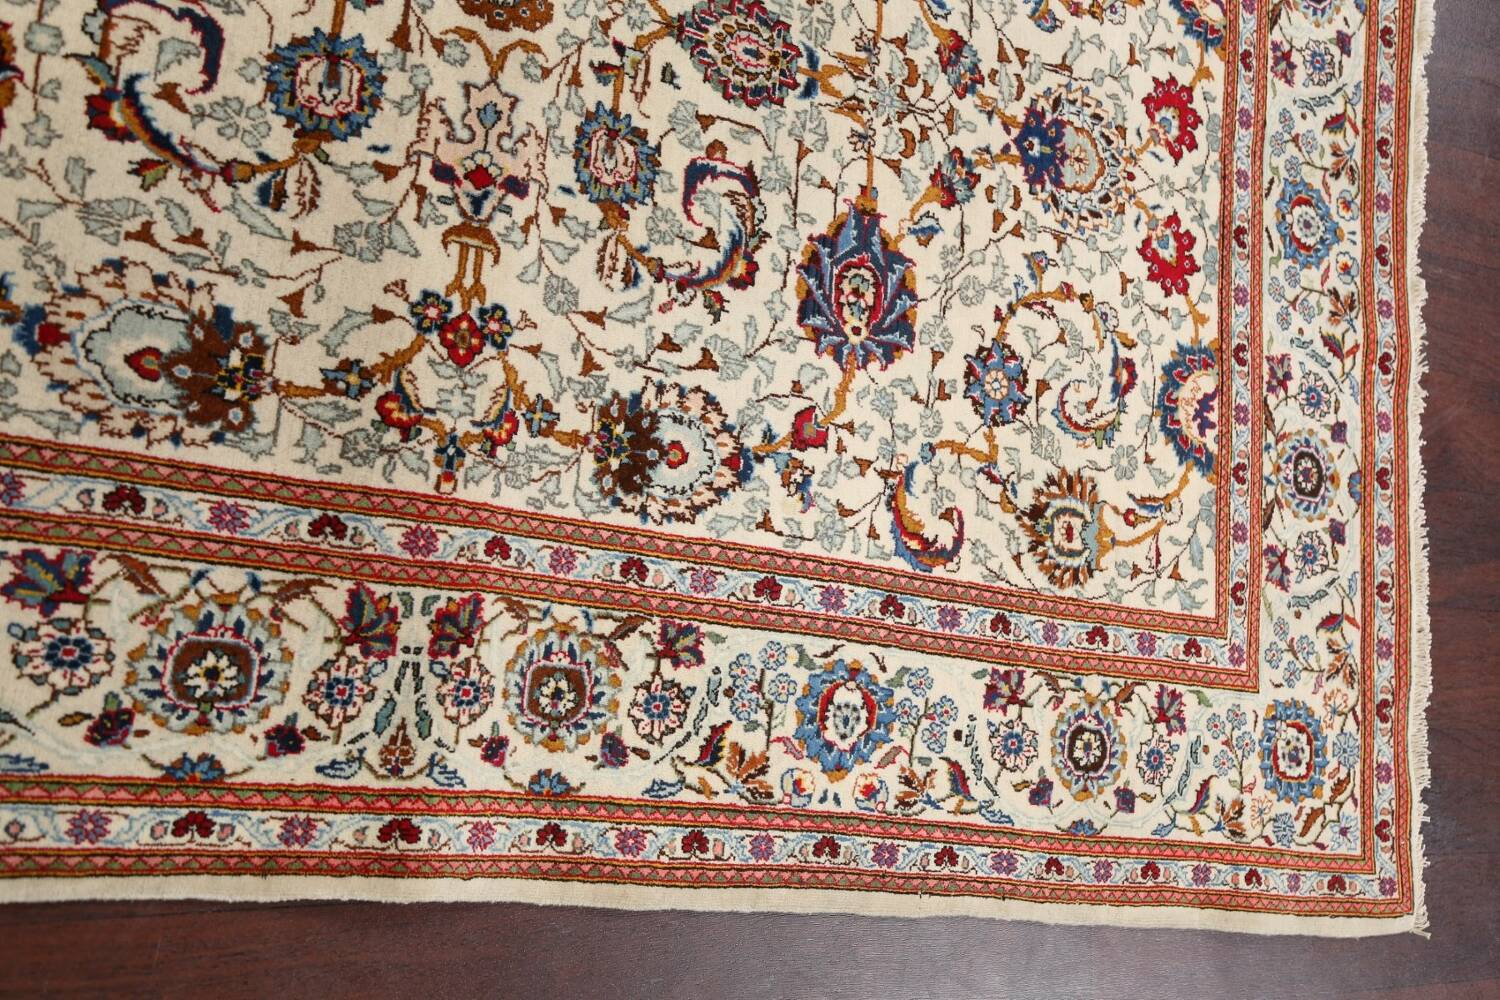 100% Vegetable Dye Floral Kashan Persian Area Rug 4x7 image 12